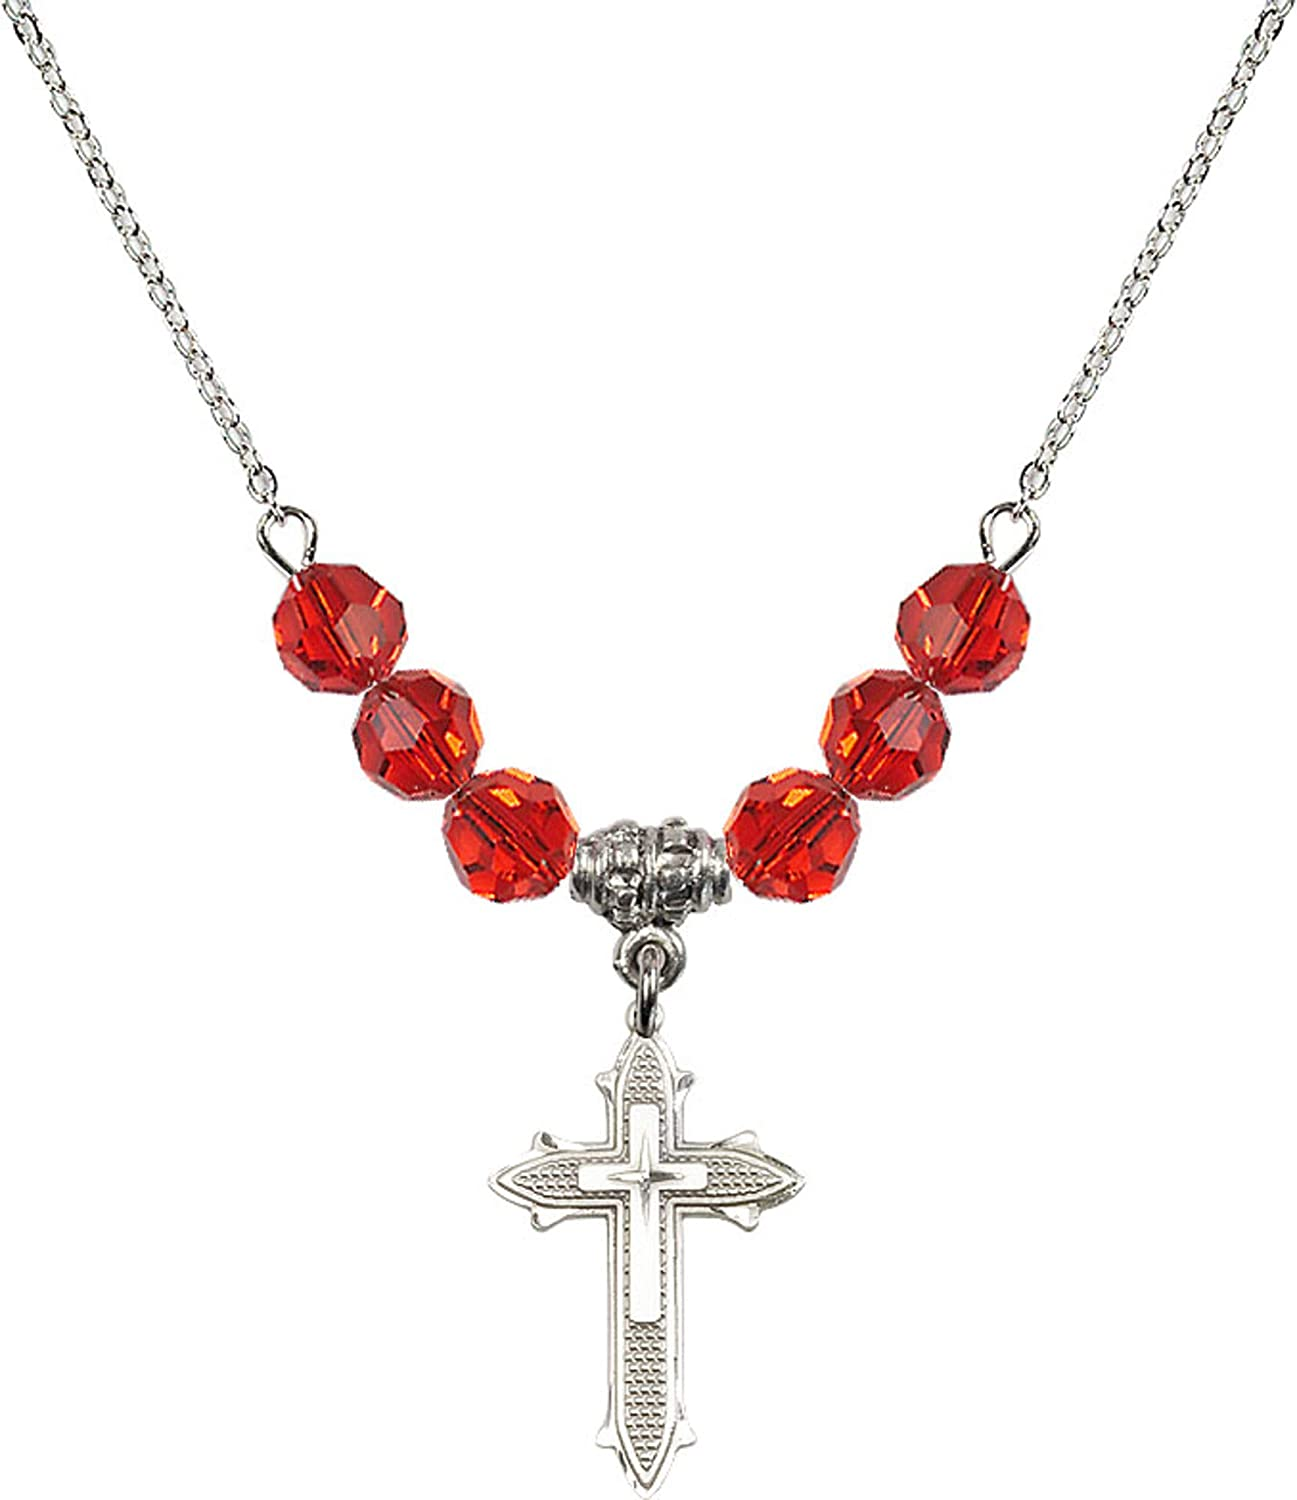 Bonyak Jewelry 18 Inch Rhodium Plated Necklace w// 6mm Red July Birth Month Stone Beads and Cross on Cross Charm